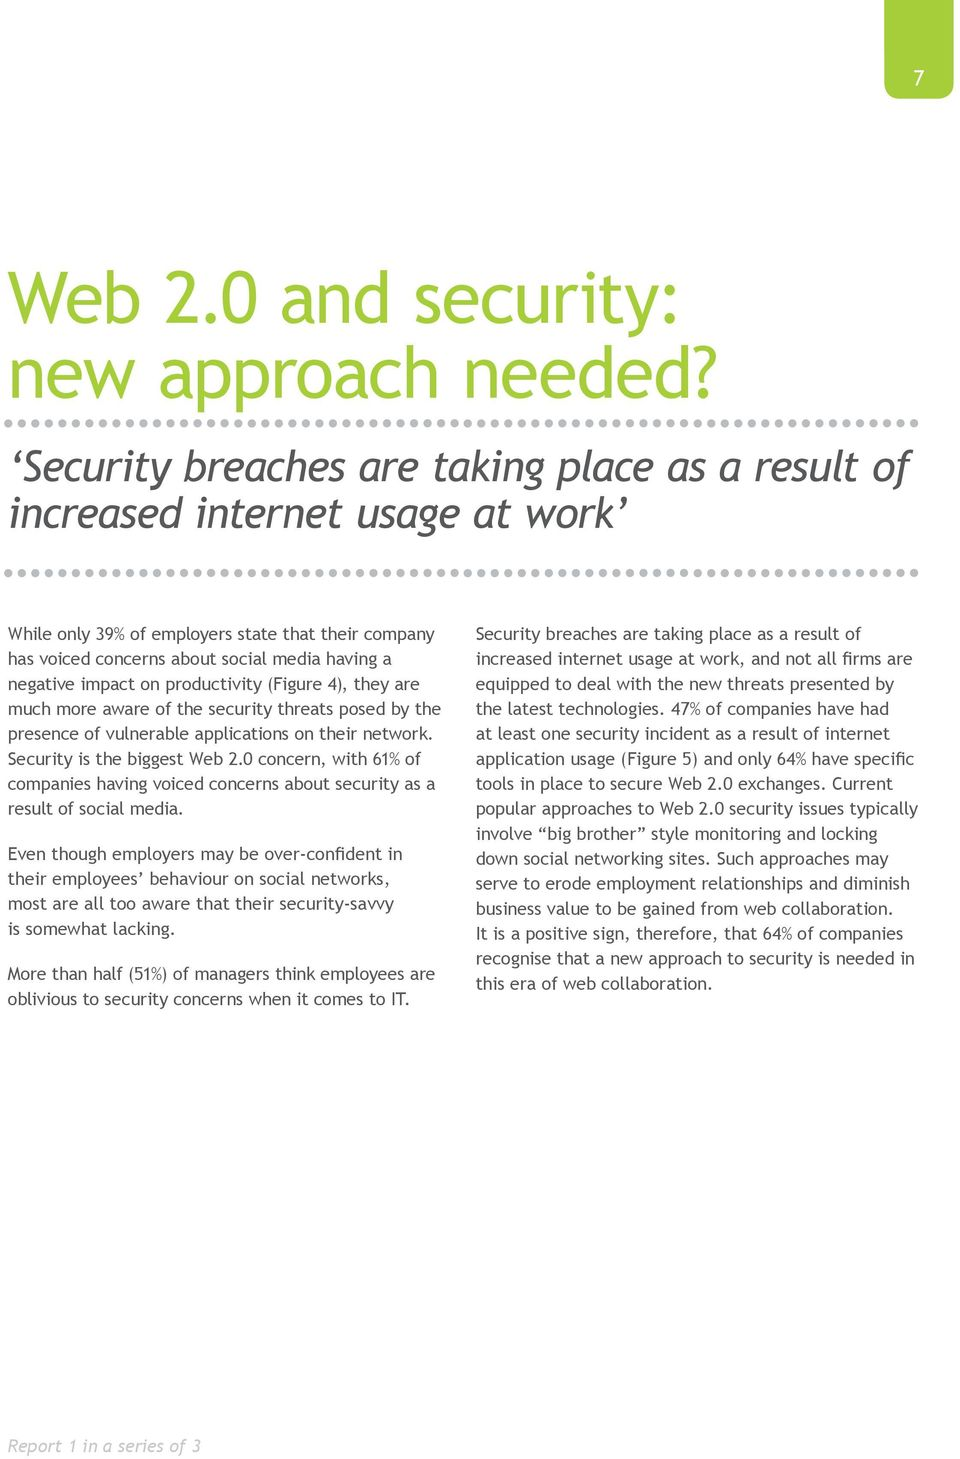 on productivity (Figure 4), they are much more aware of the security threats posed by the presence of vulnerable applications on their network. Security is the biggest Web 2.